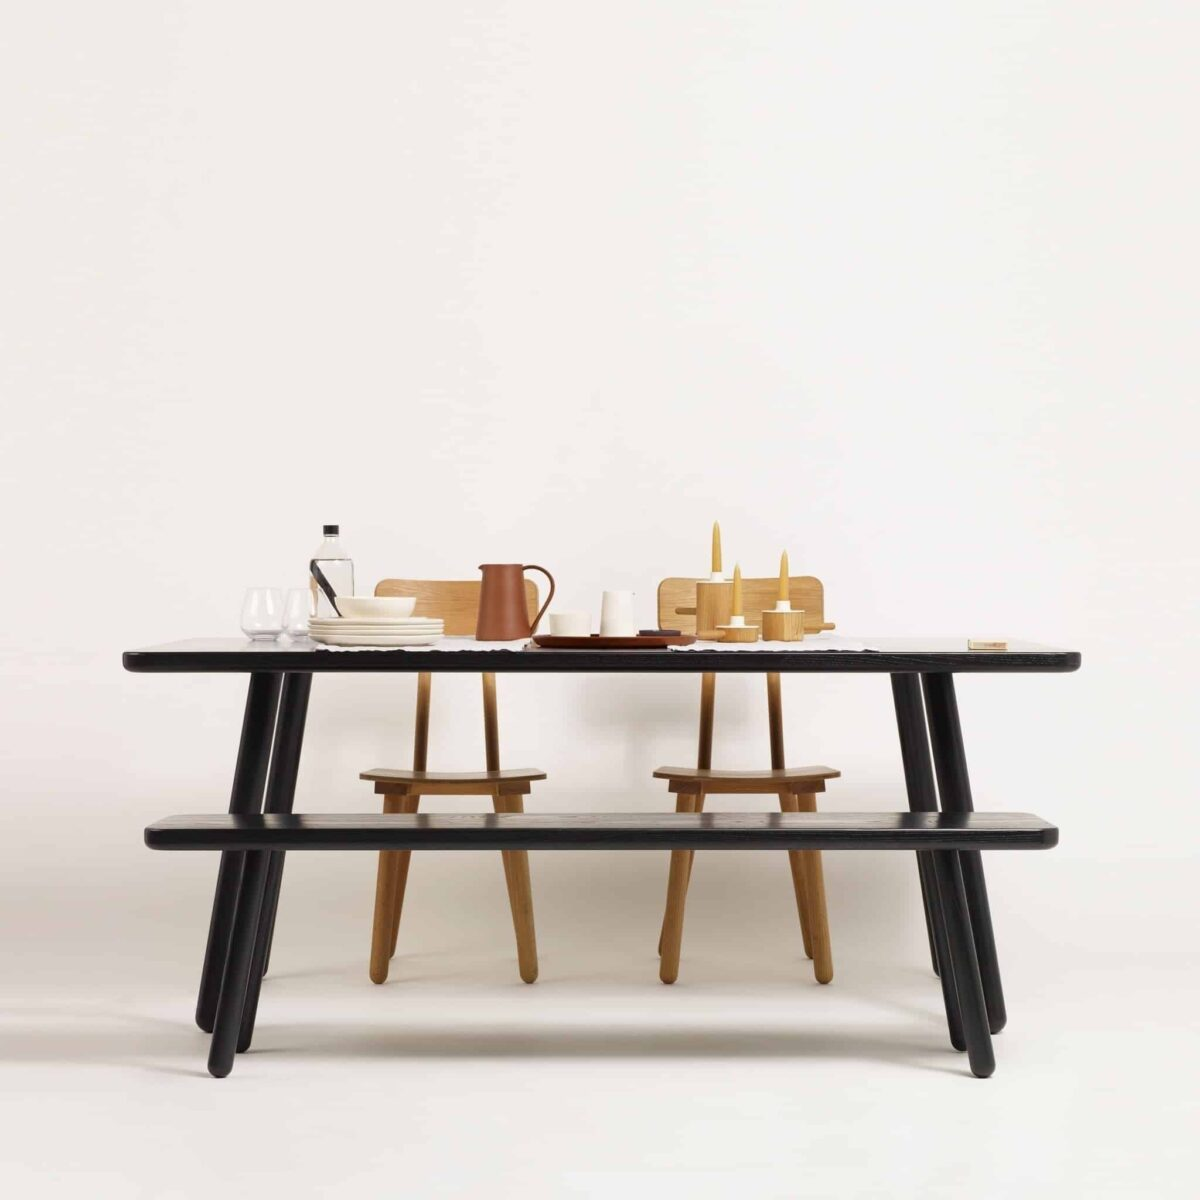 series-one-table-black-ash-another-country-003